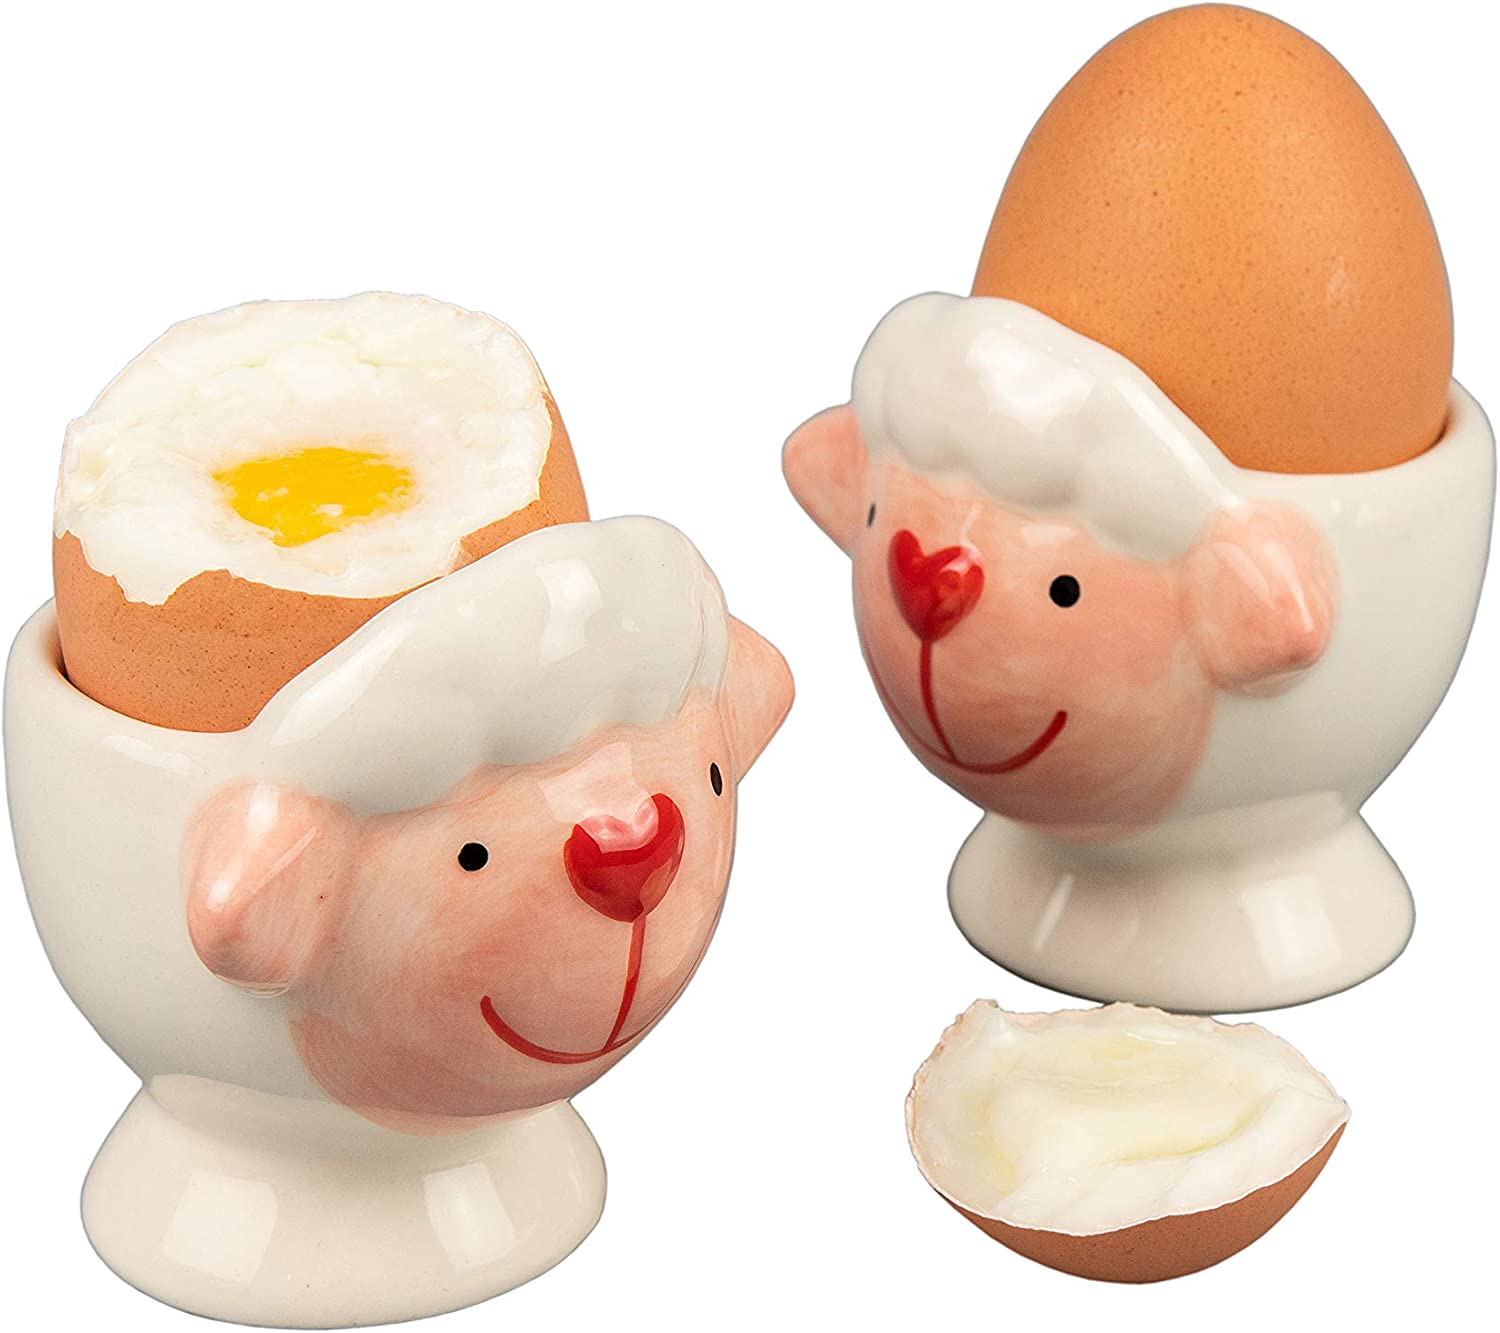 WD Gorgeous - 2 Pcs Cute Goat Shape Ceramic boiled soft or San Diego Mall h cup Hard egg